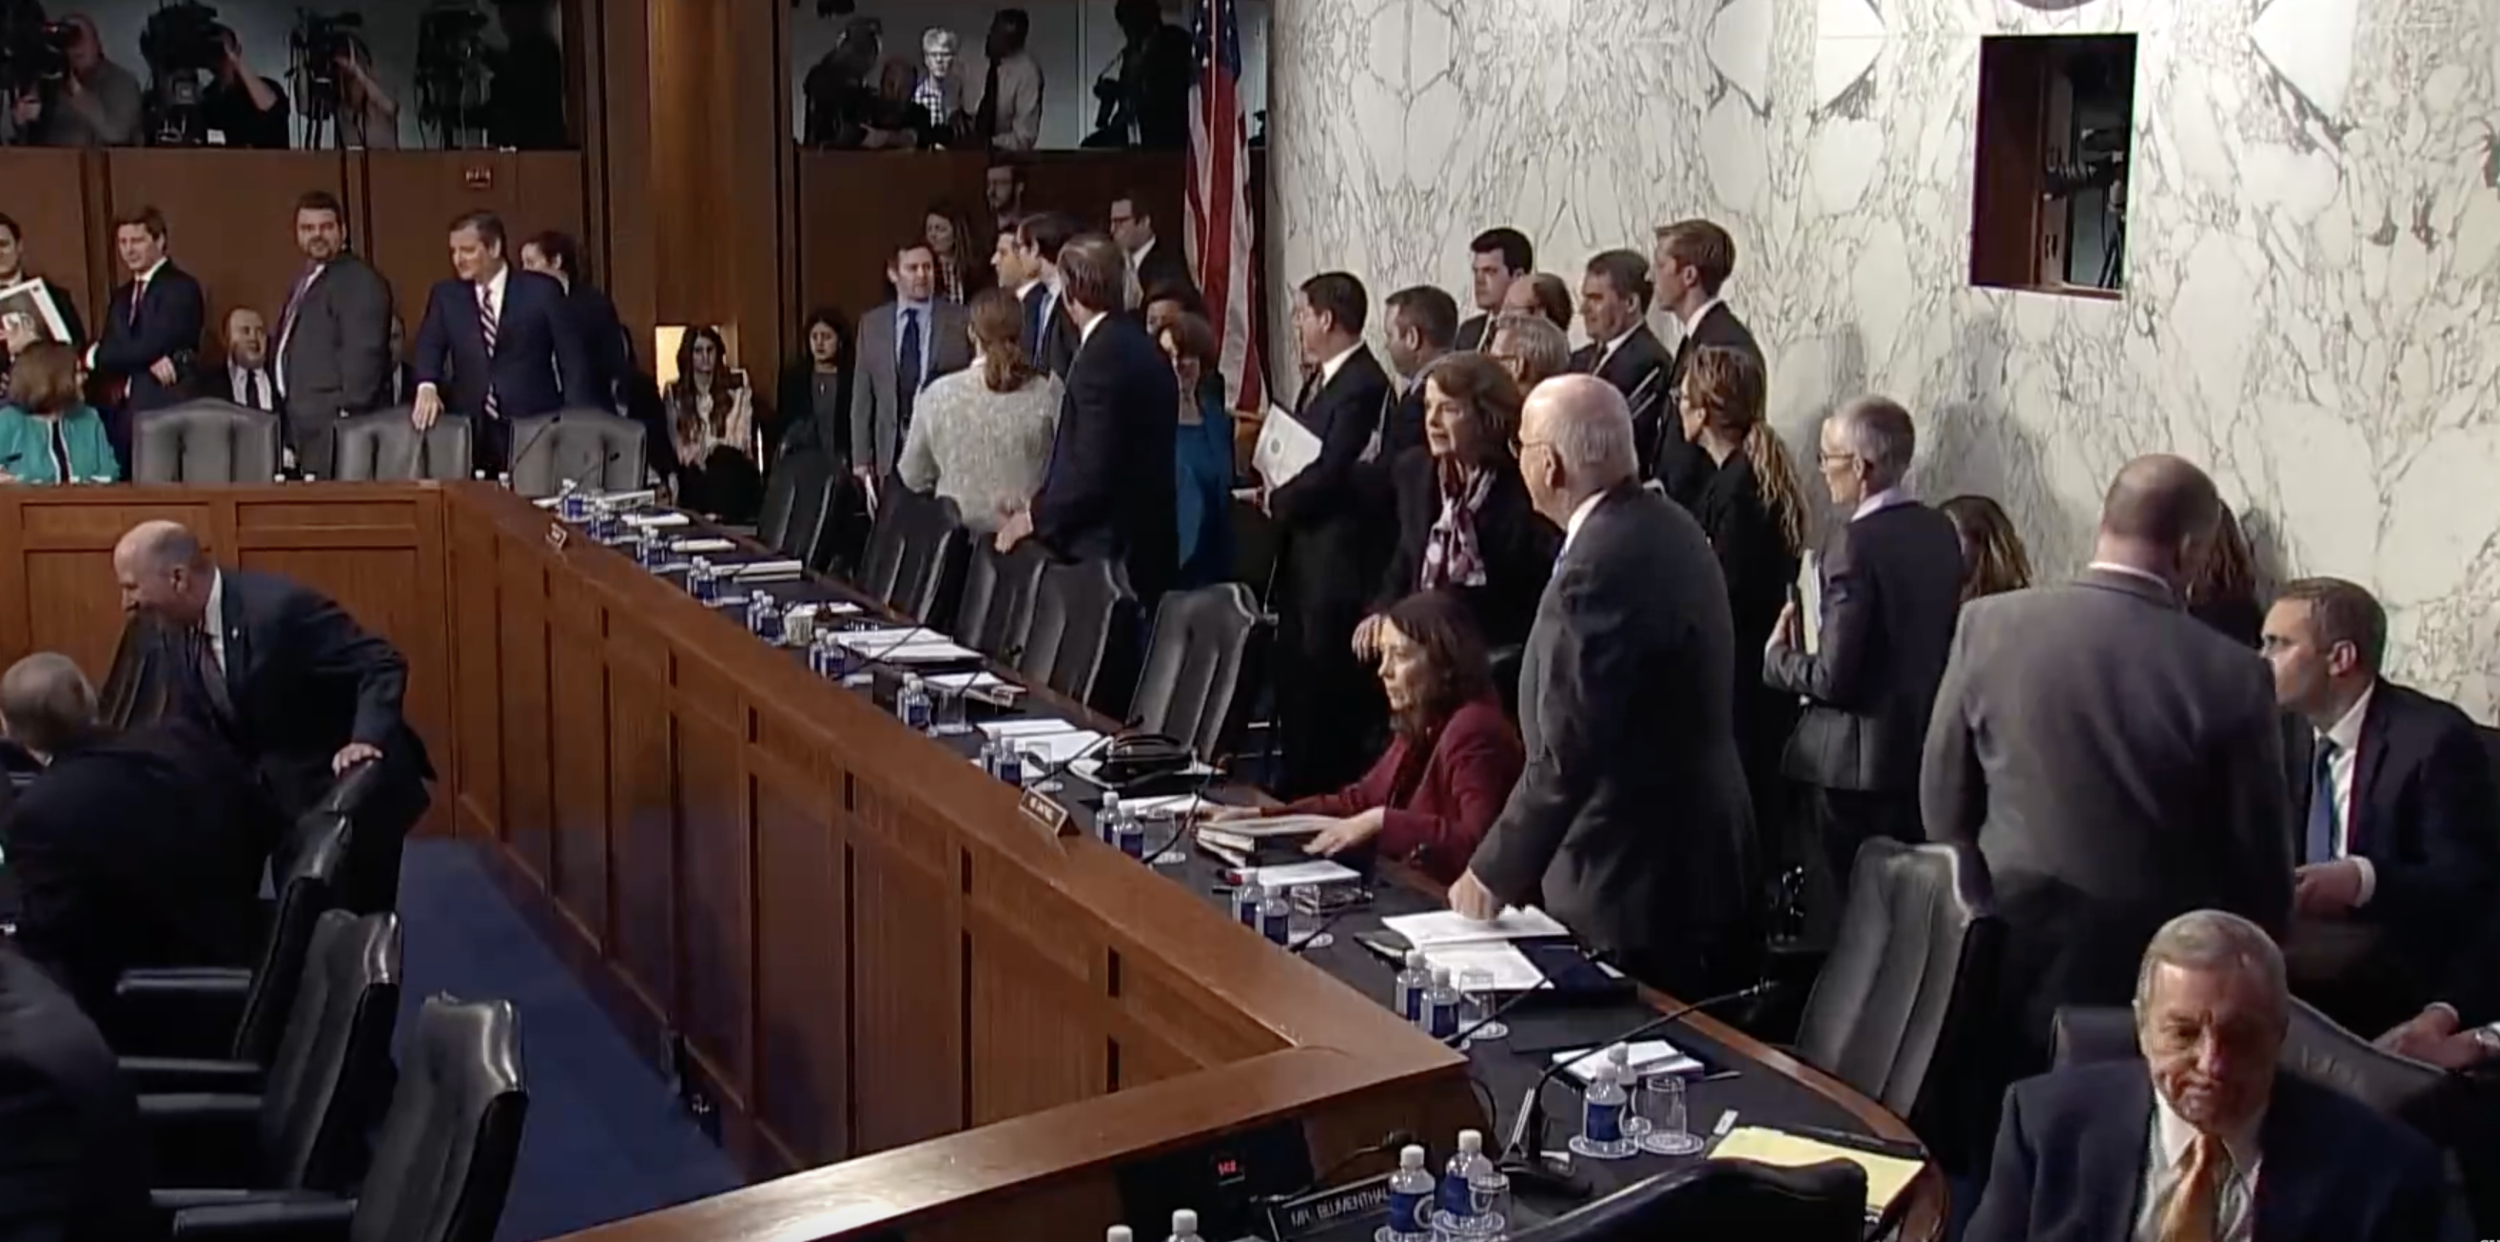 Image taken from Youtube on the Guardian news live stream of the hearing.